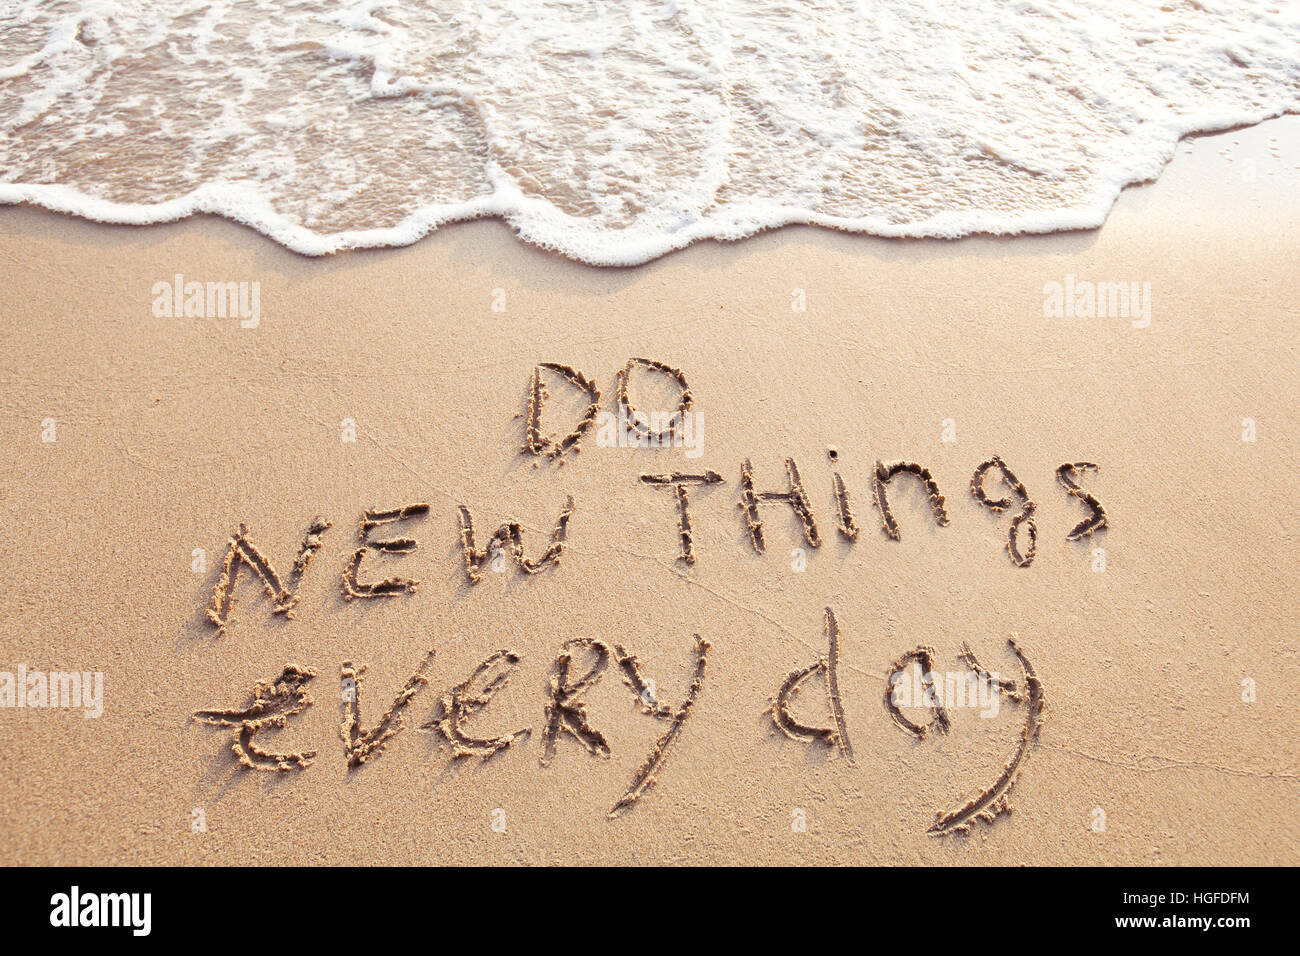 do new things every day, motivational quote concept - Stock Image